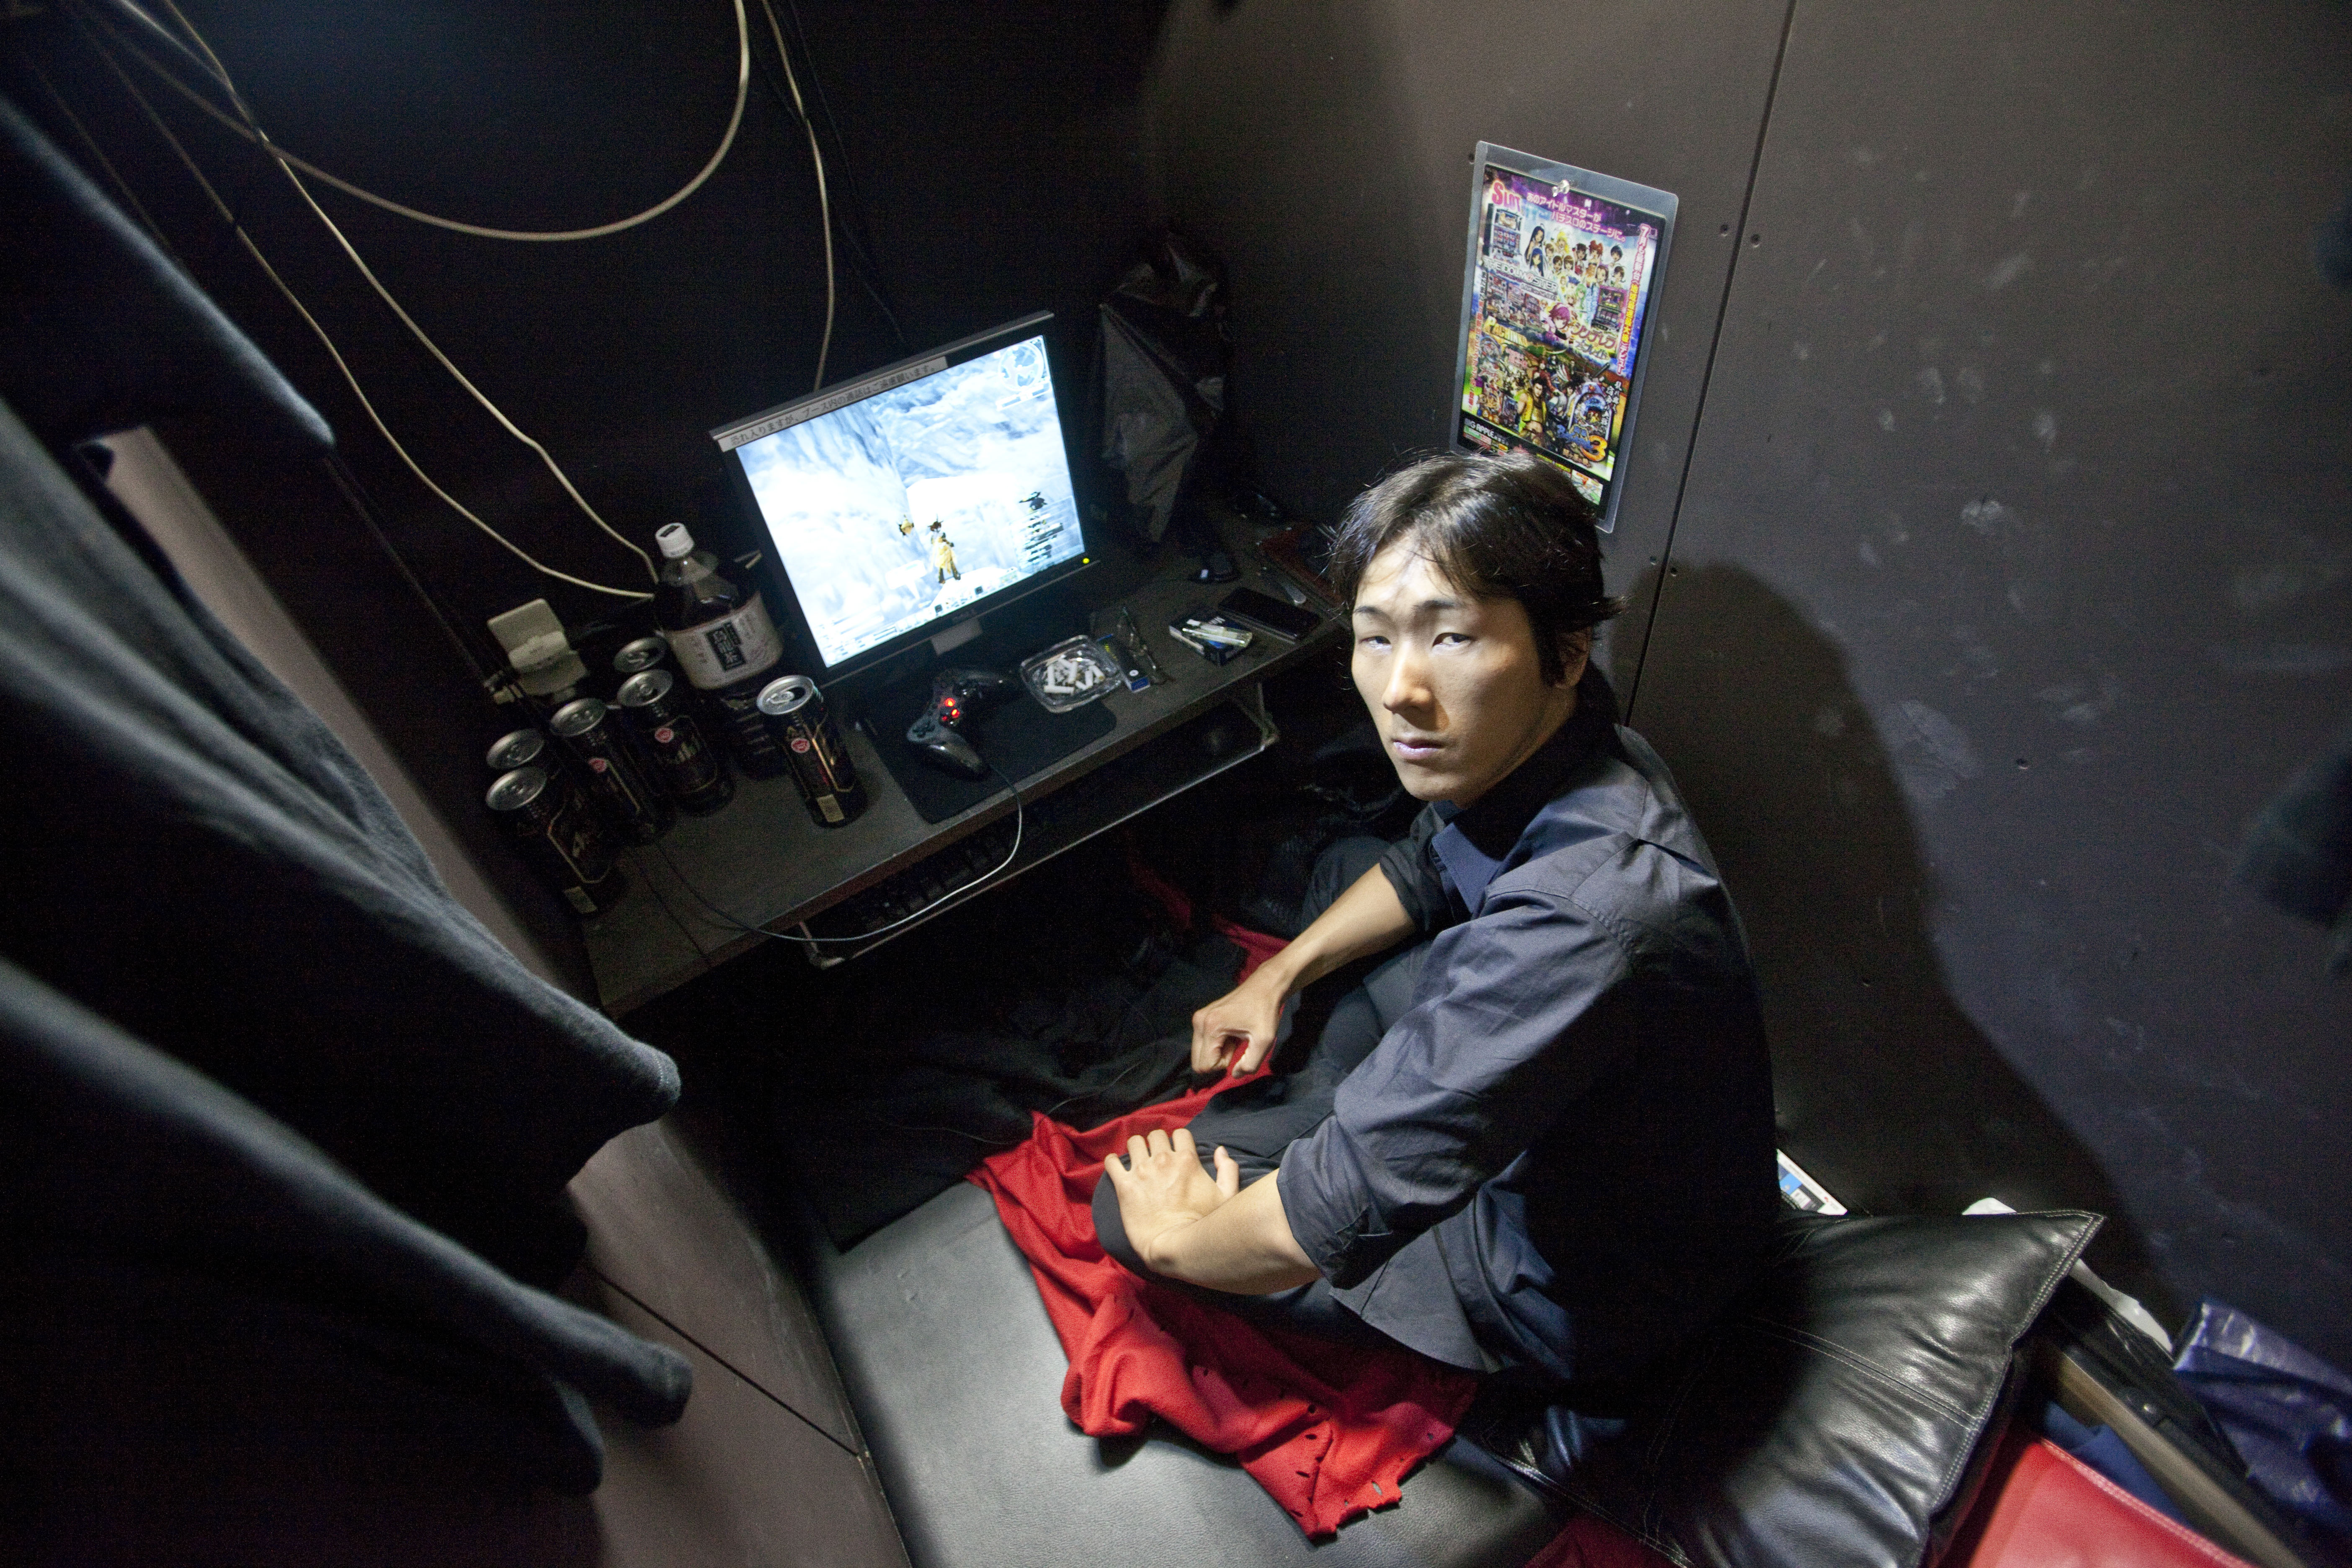 Hard Times In Japan: 'Home' Might Be An Internet Cafe | NCPR News